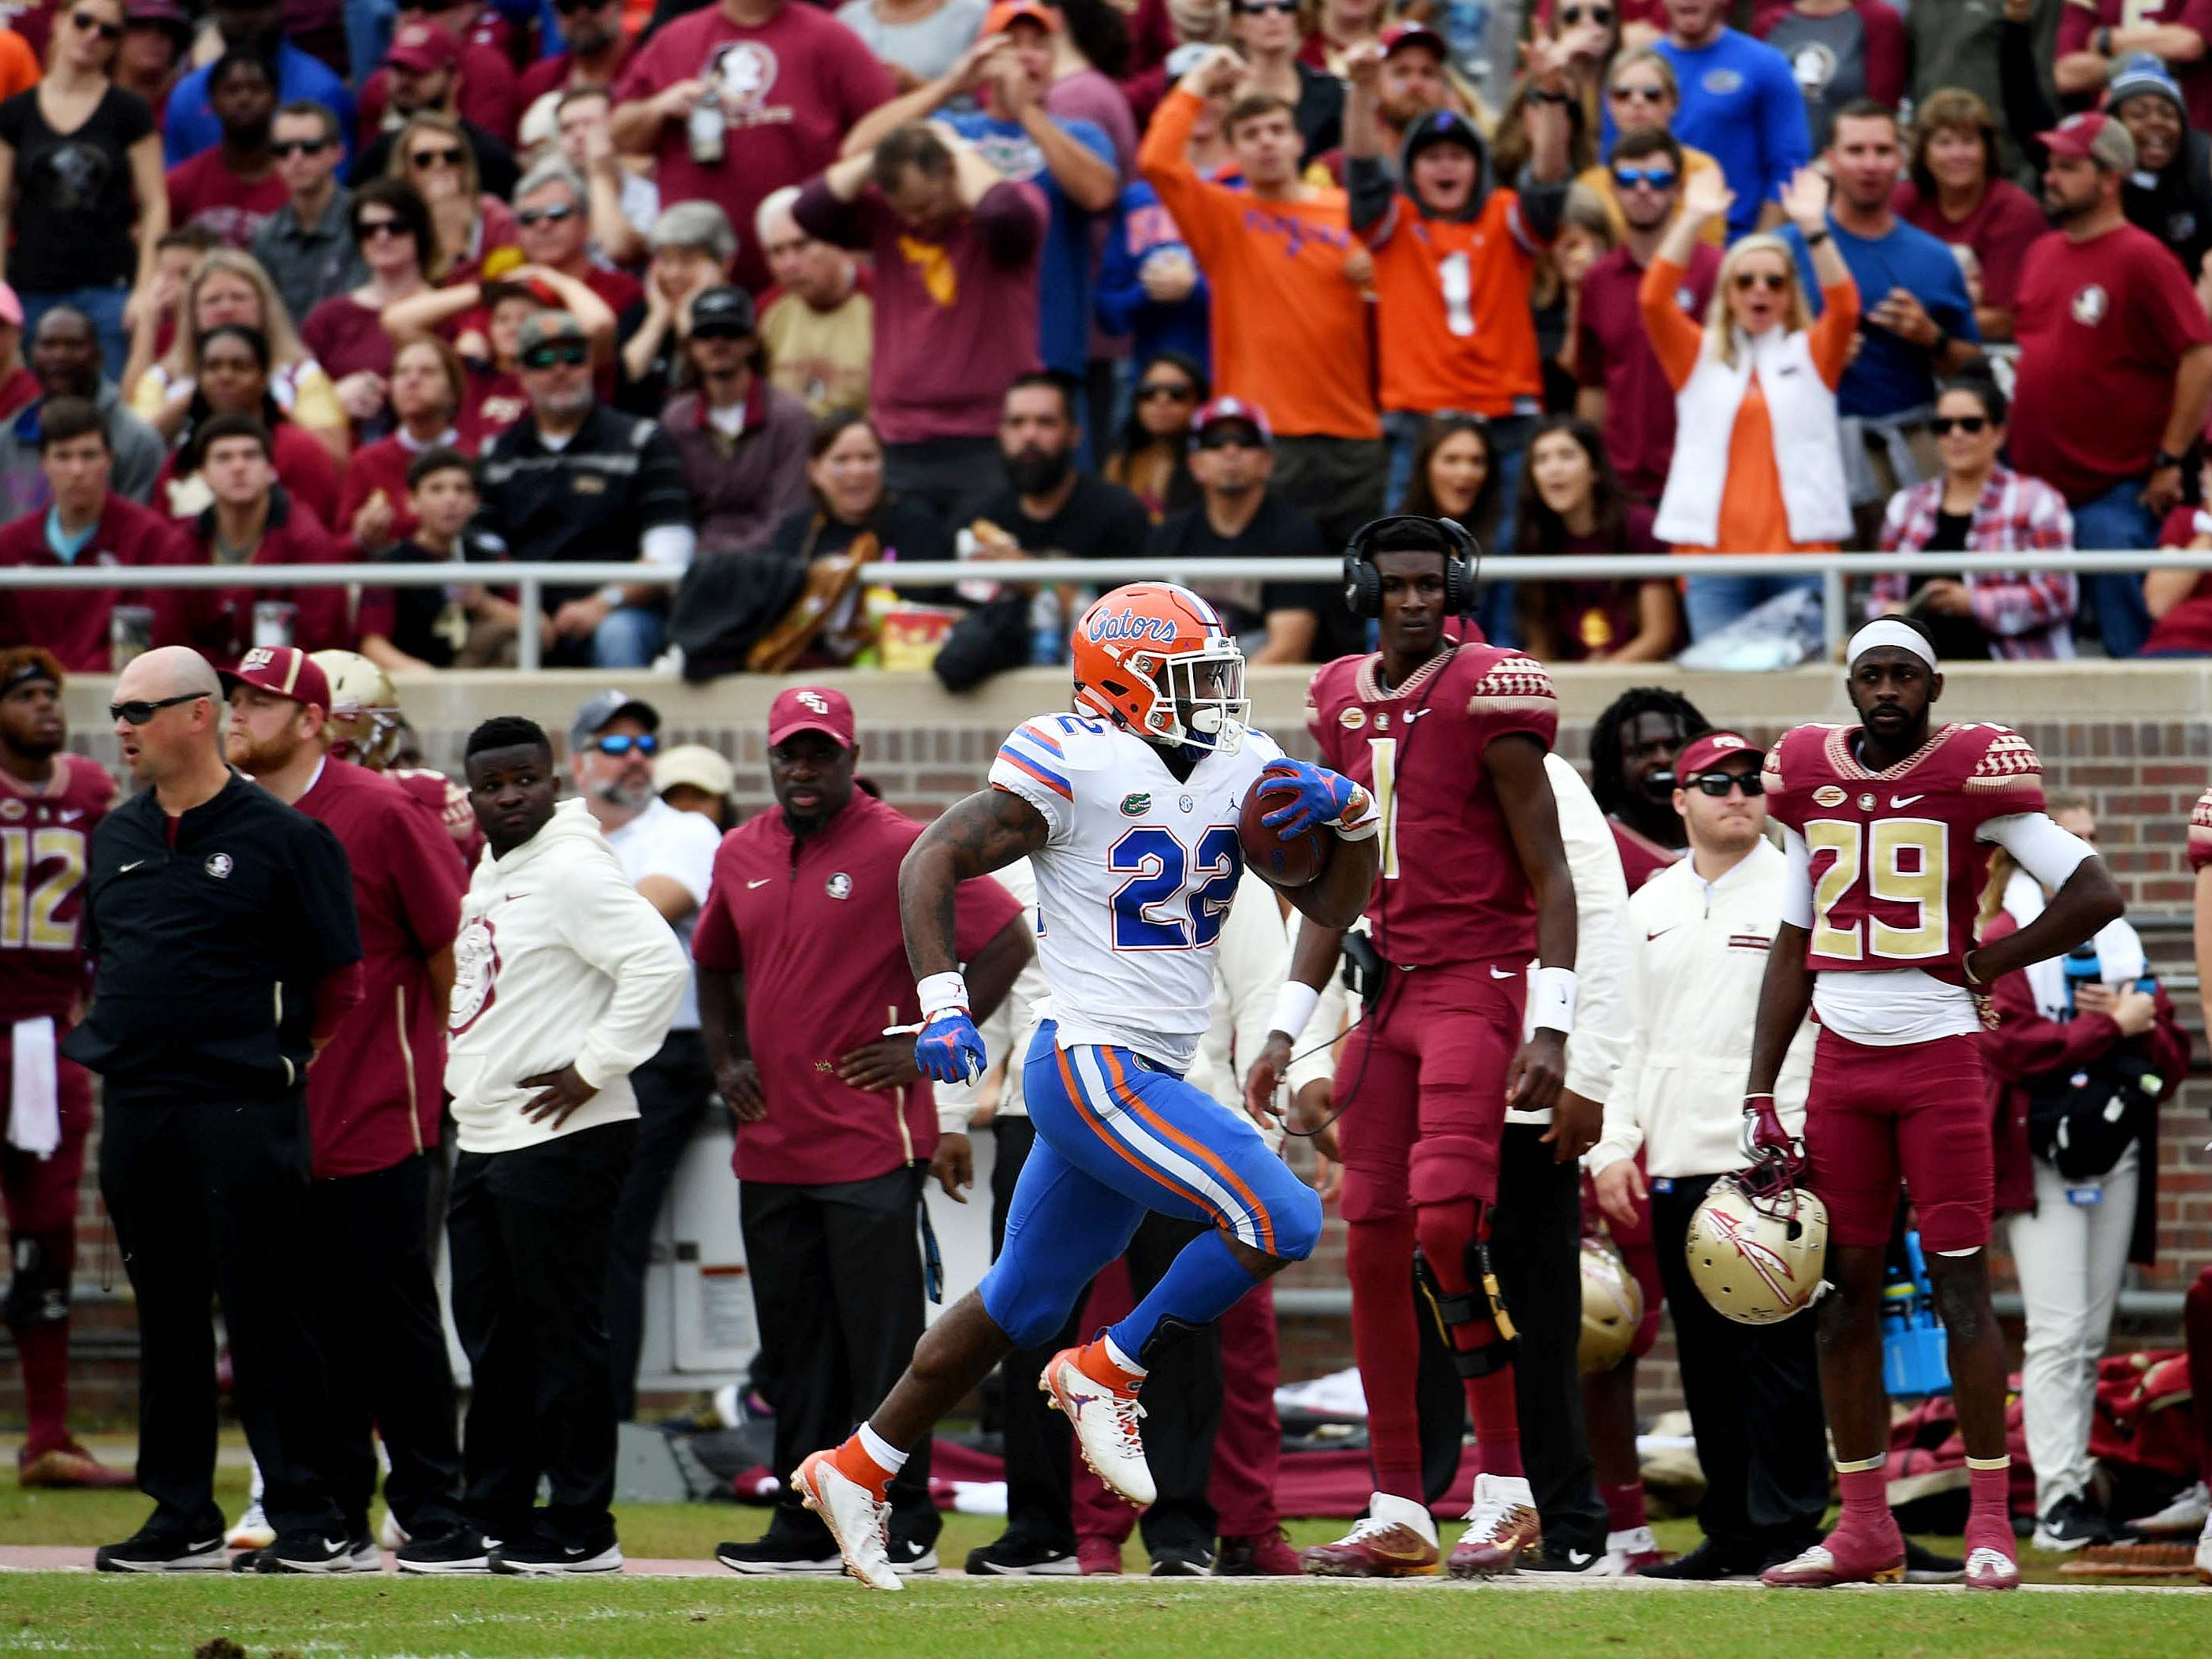 Florida Gators running back Lamical Perine (22) runs for a touchdown during the first half against the Florida State Seminoles at Doak Campbell Stadium.